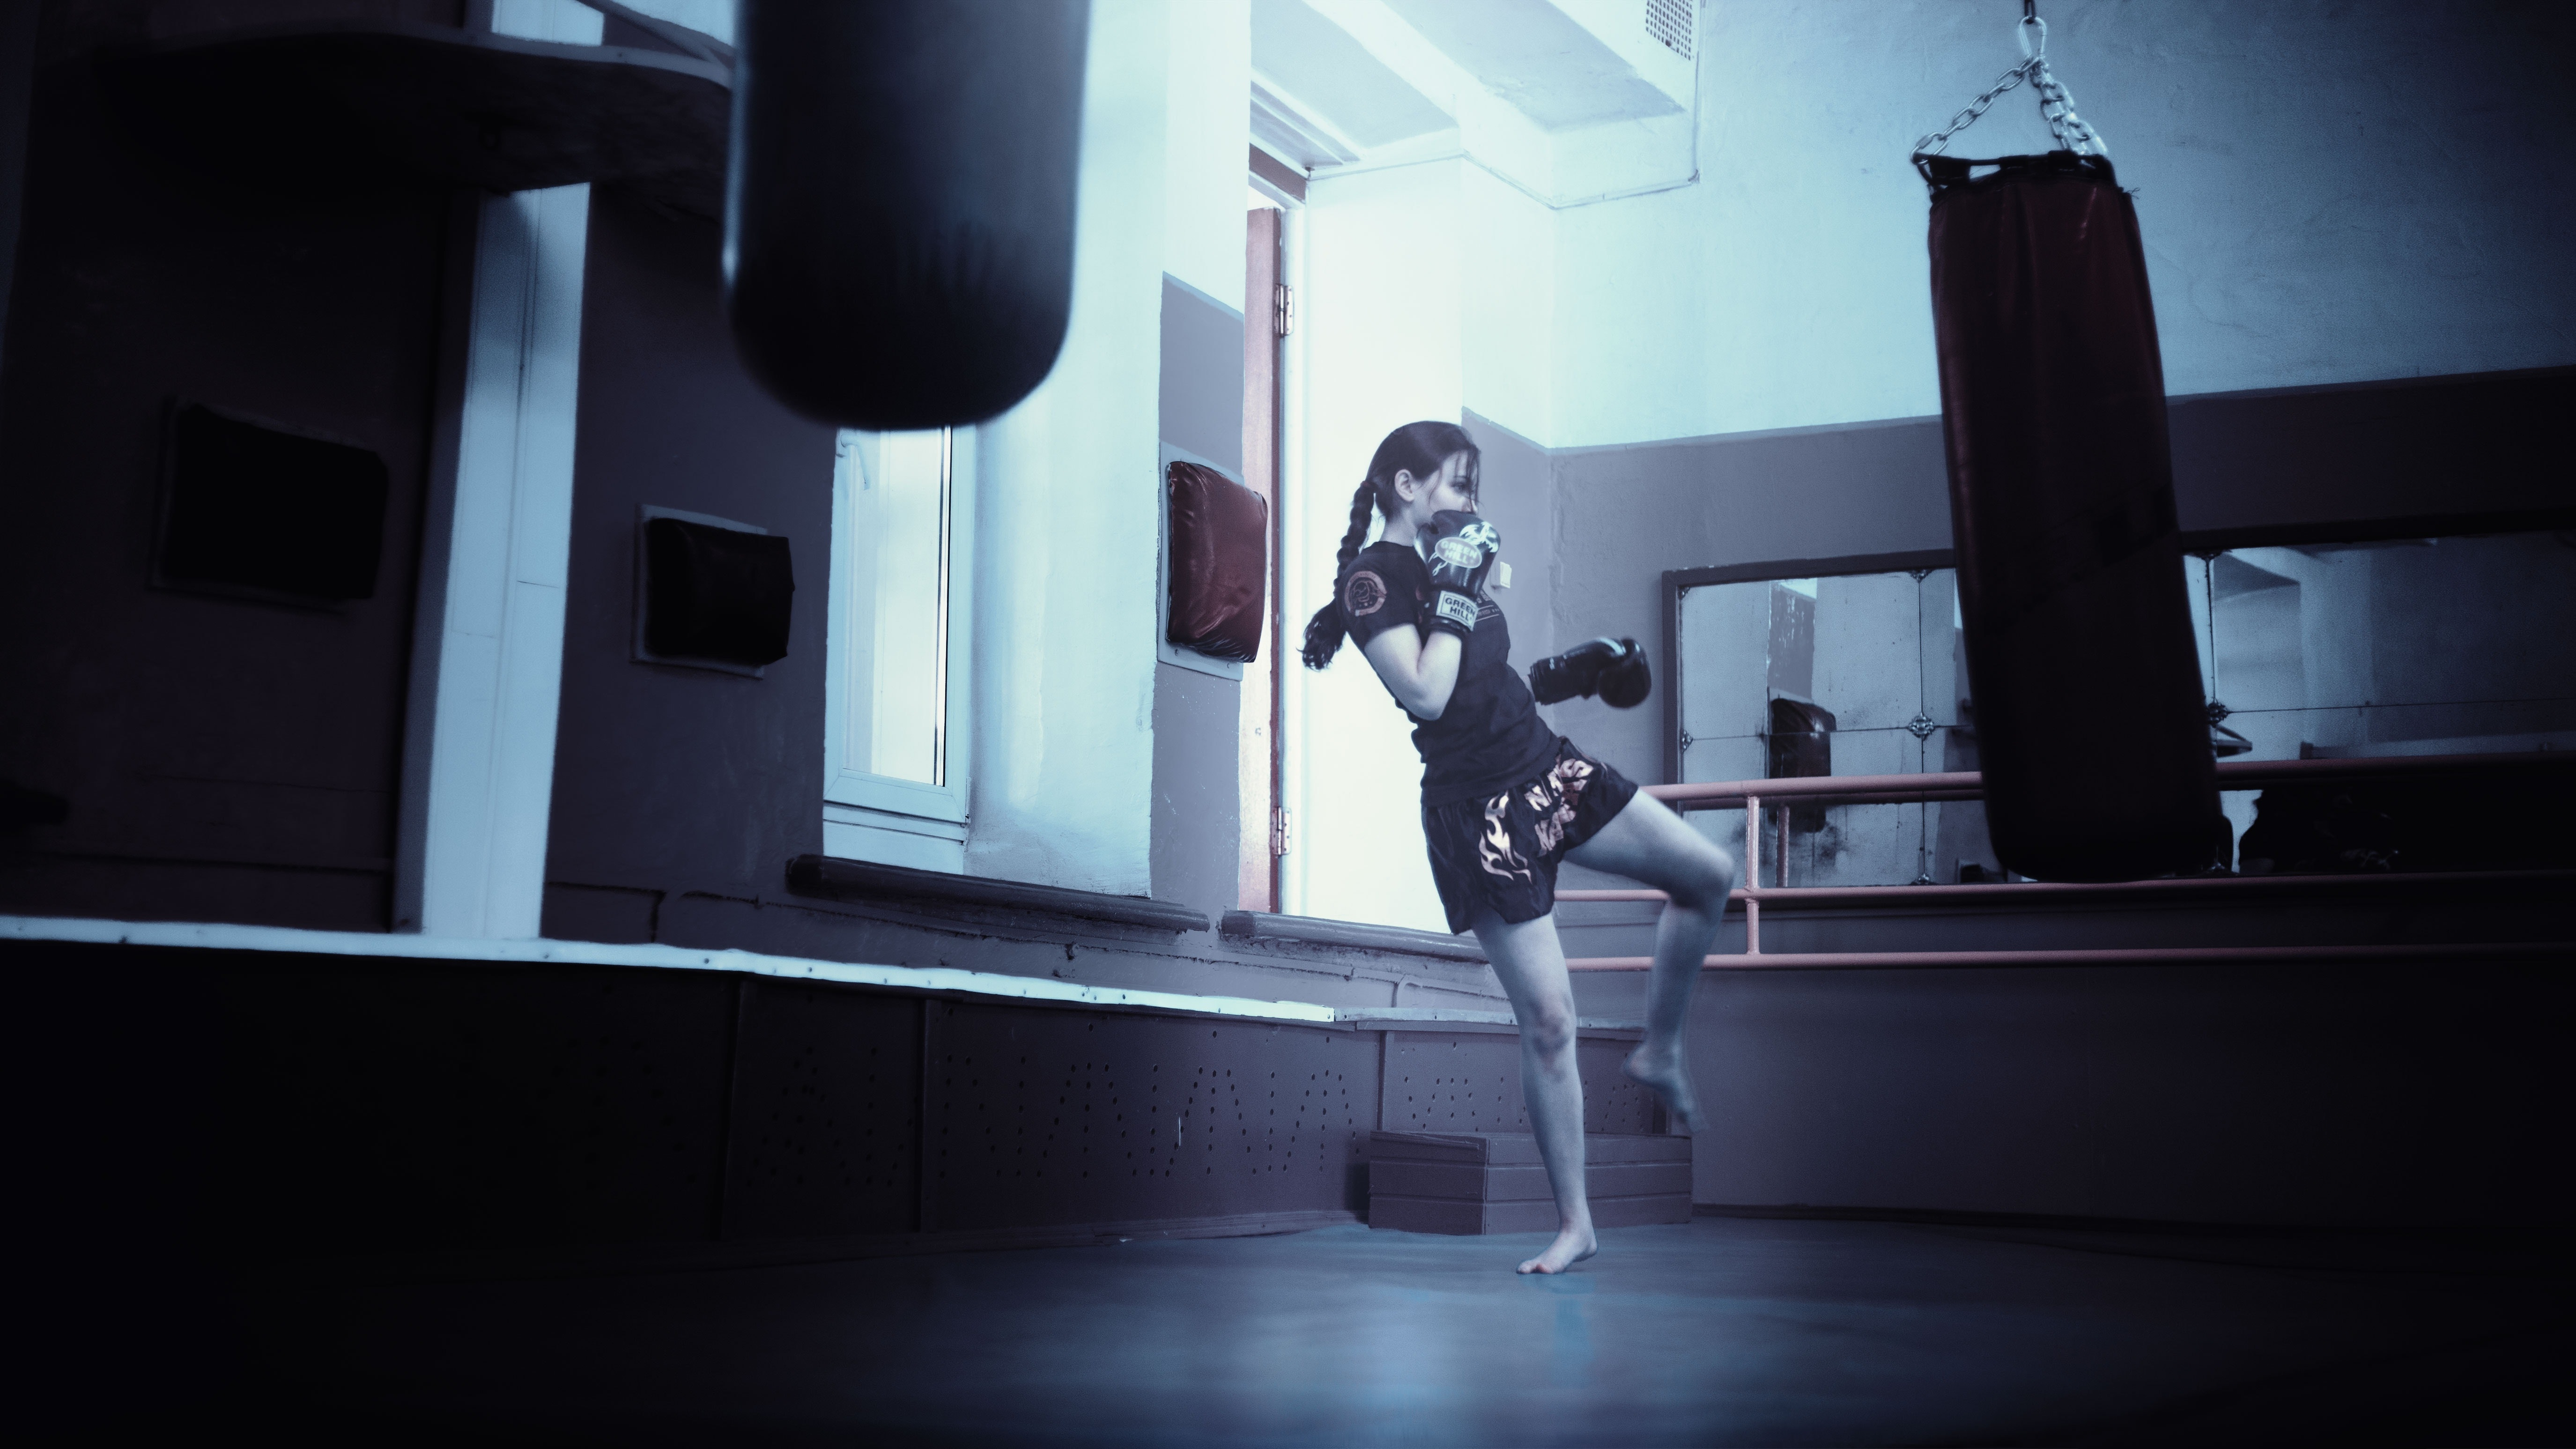 Woman Training in a Gym Kicking a Training Bag, Boxing, Exercise, Female, Girl, HQ Photo